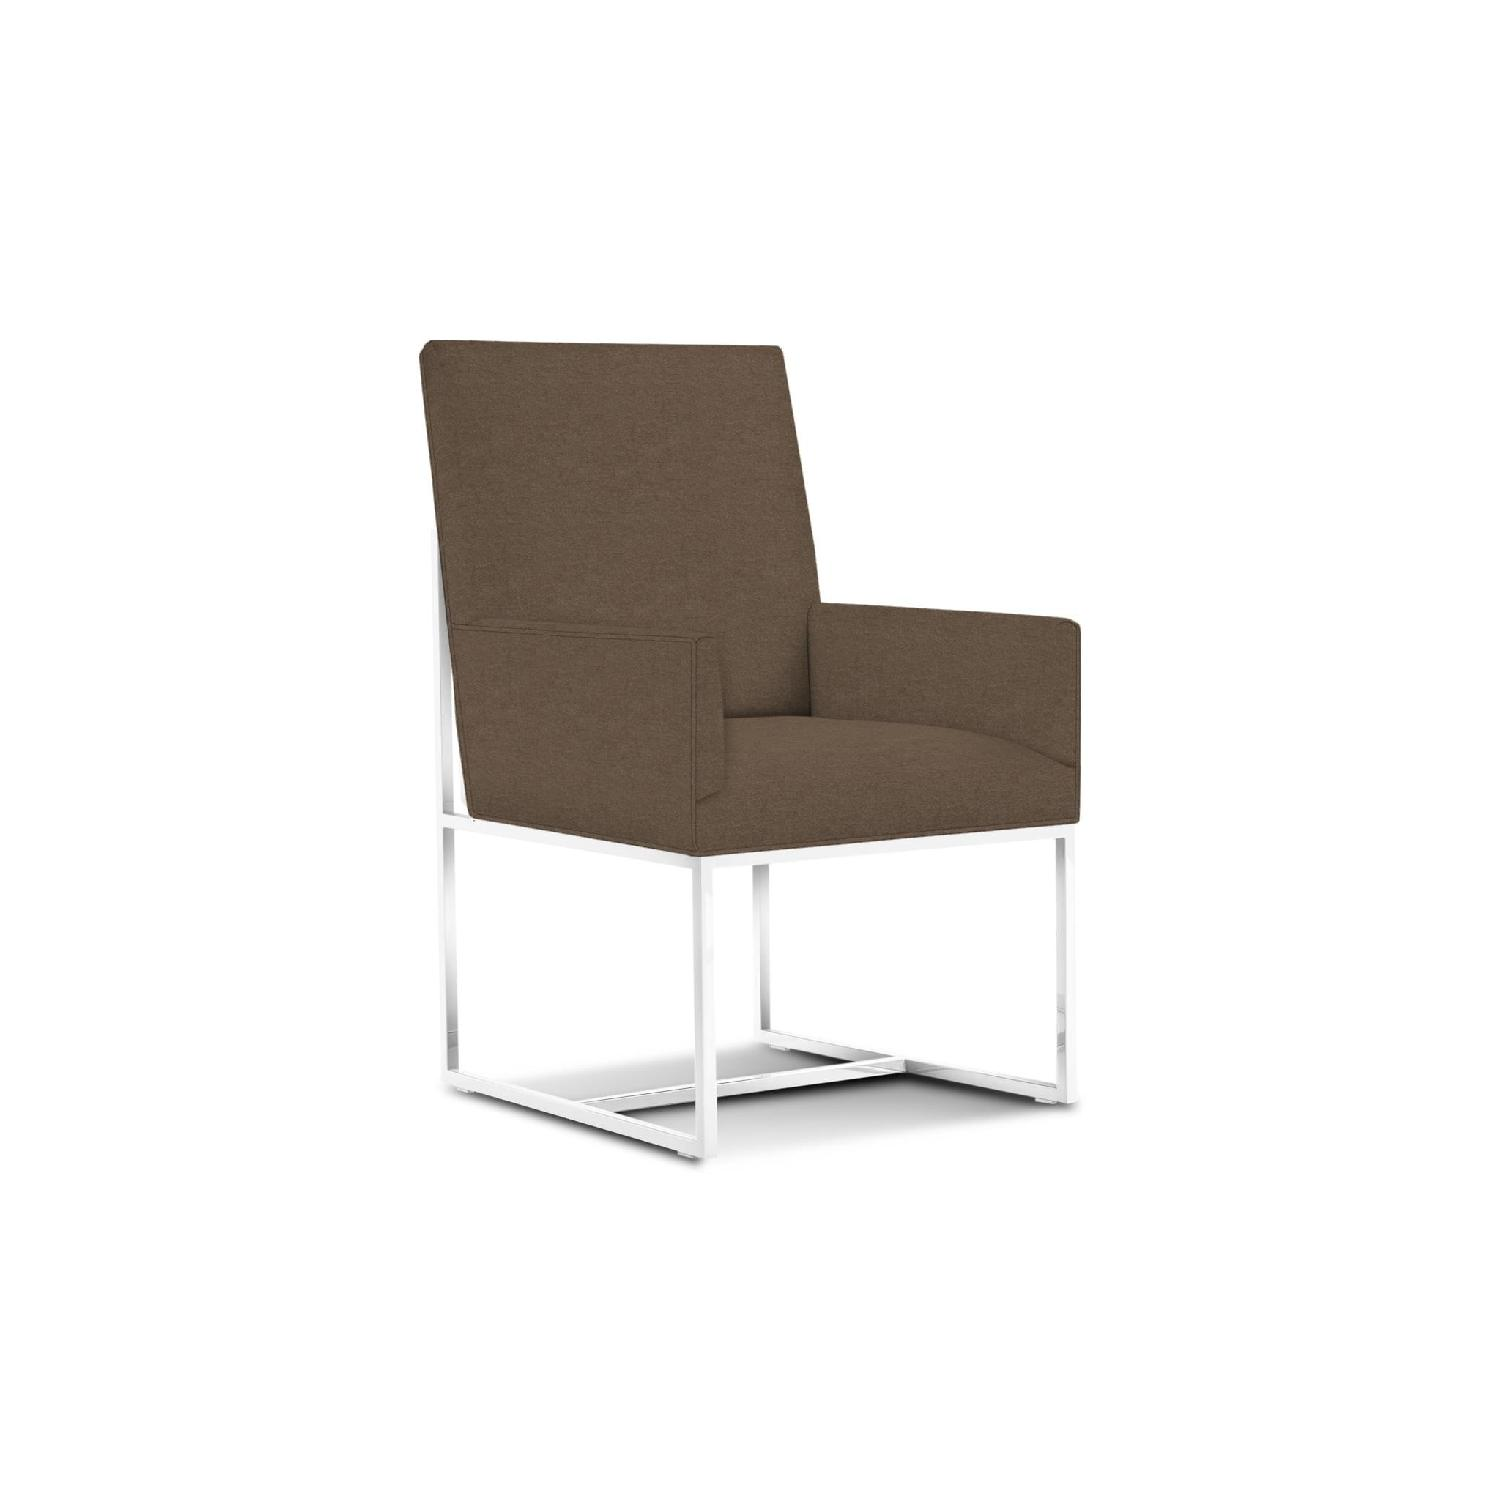 Mitchell Gold + Bob Williams Gage Low Dining Arm Chair